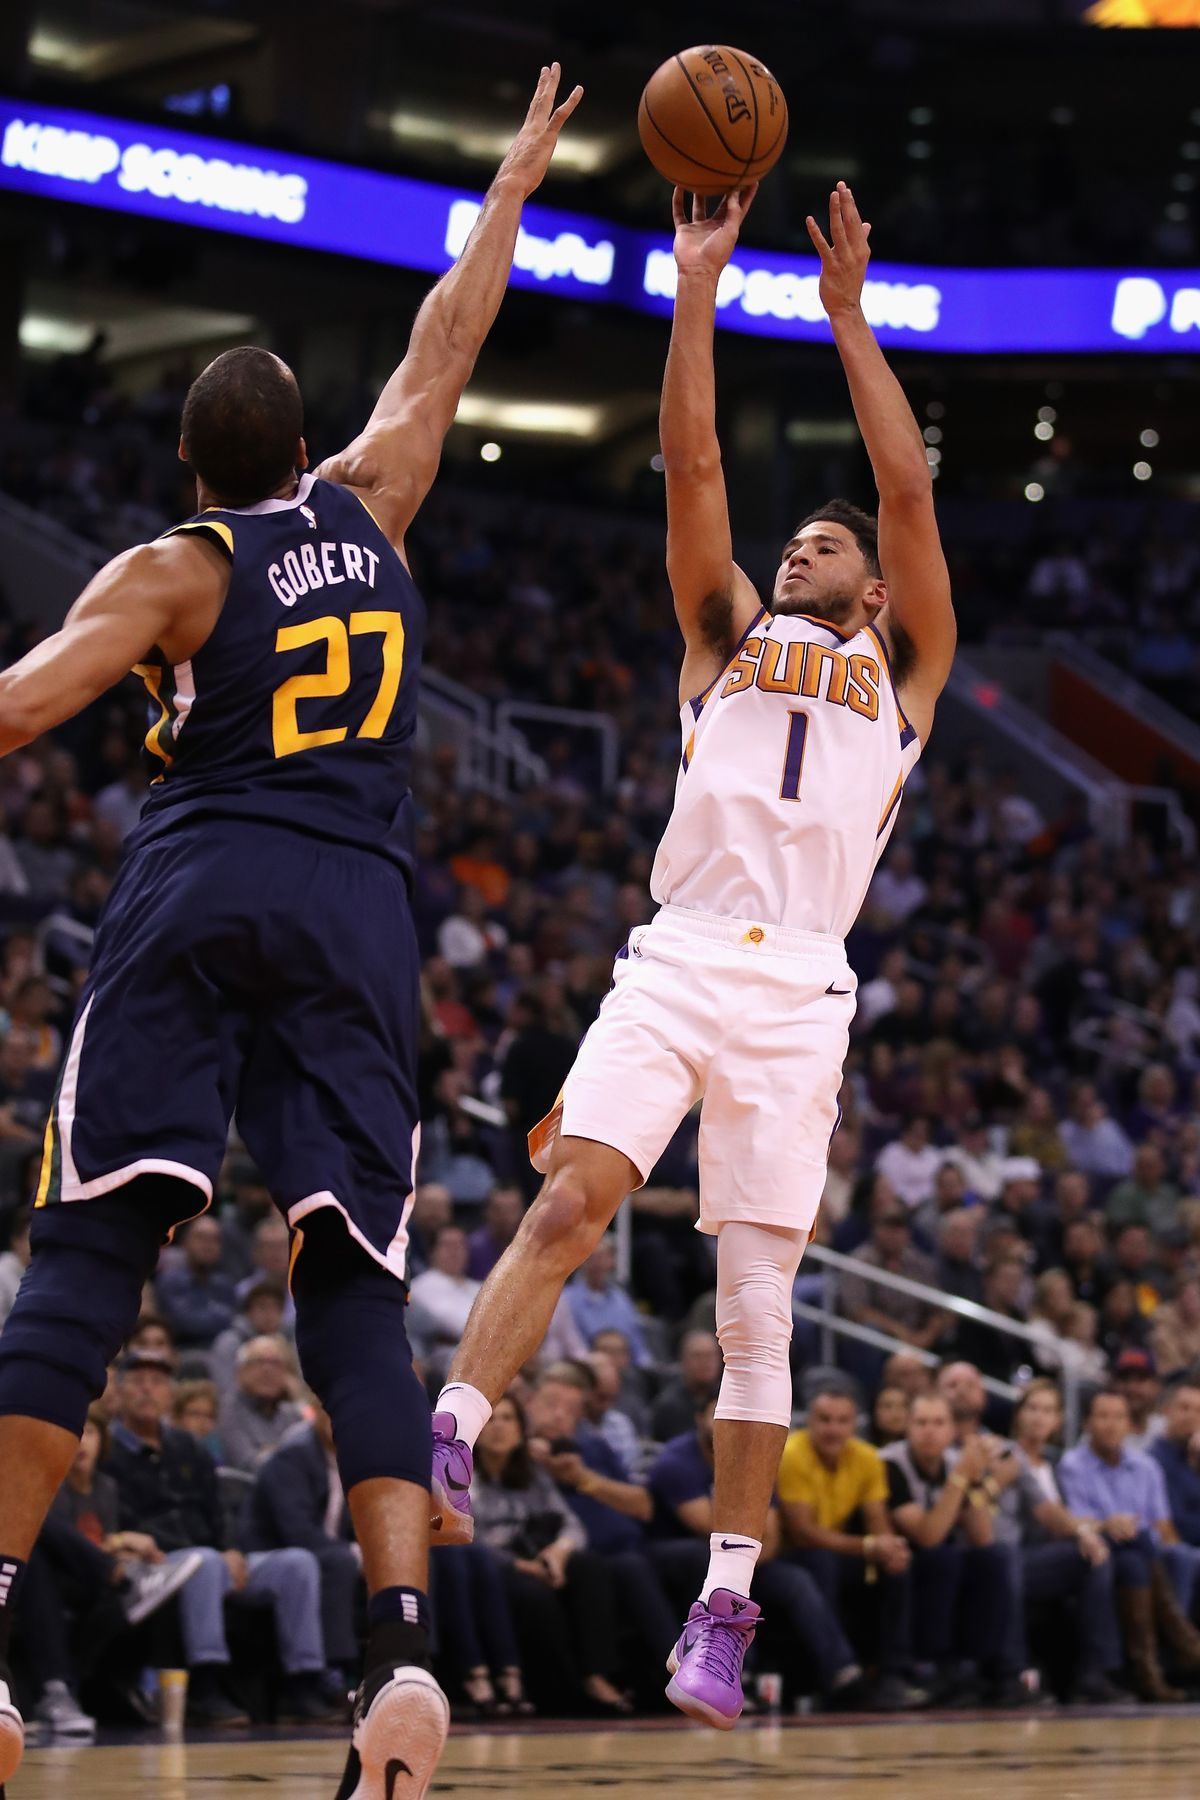 MITCHELL HITS CLUTCH FREE THROW IN FINAL SECONDS JAZZ WIN